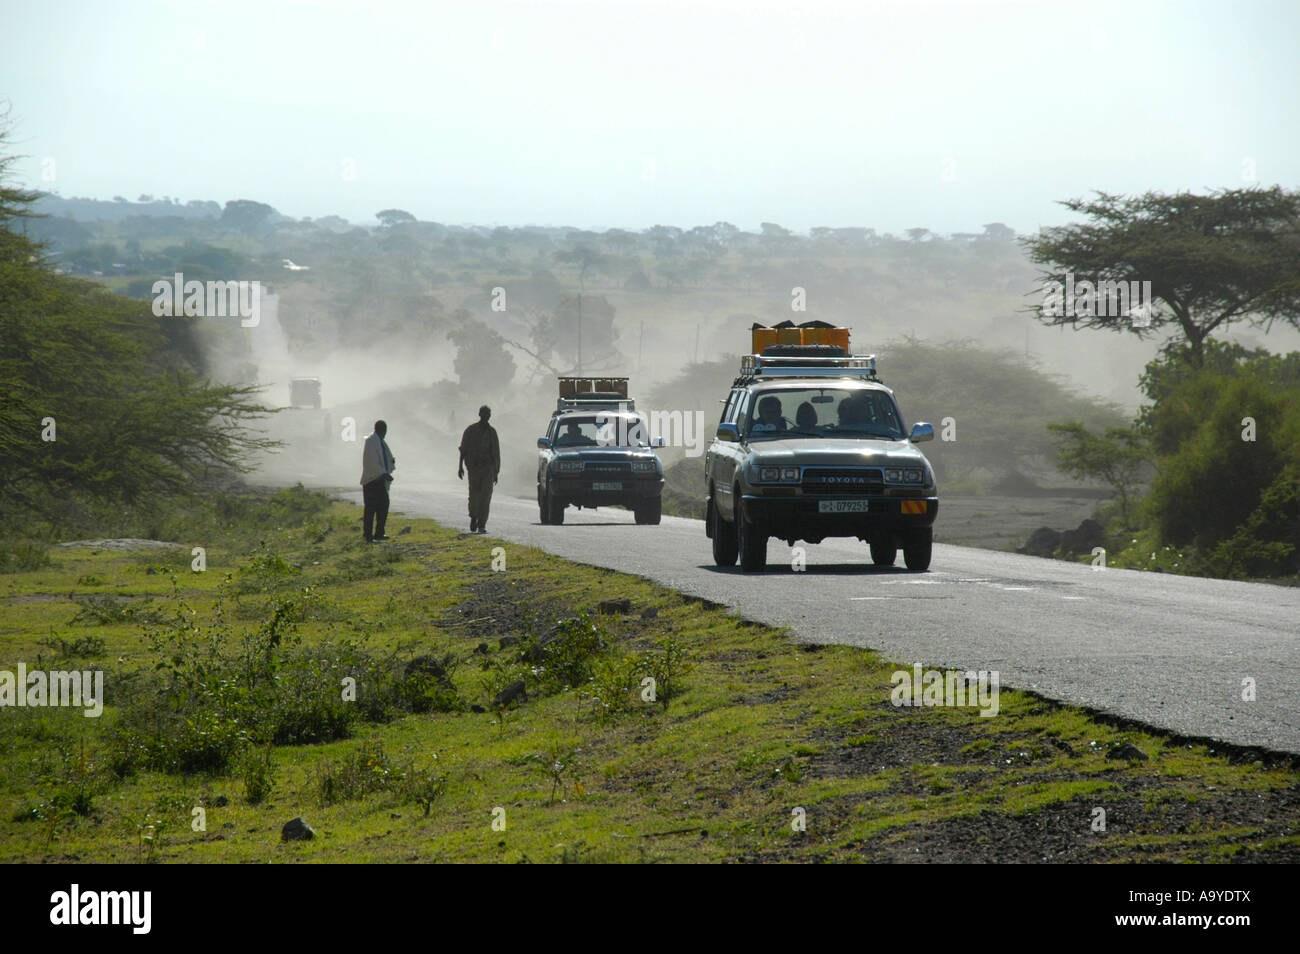 Two Toyota Landcruiser with expedition equipment on a road in the savannah near Shashamene Ethiopia - Stock Image